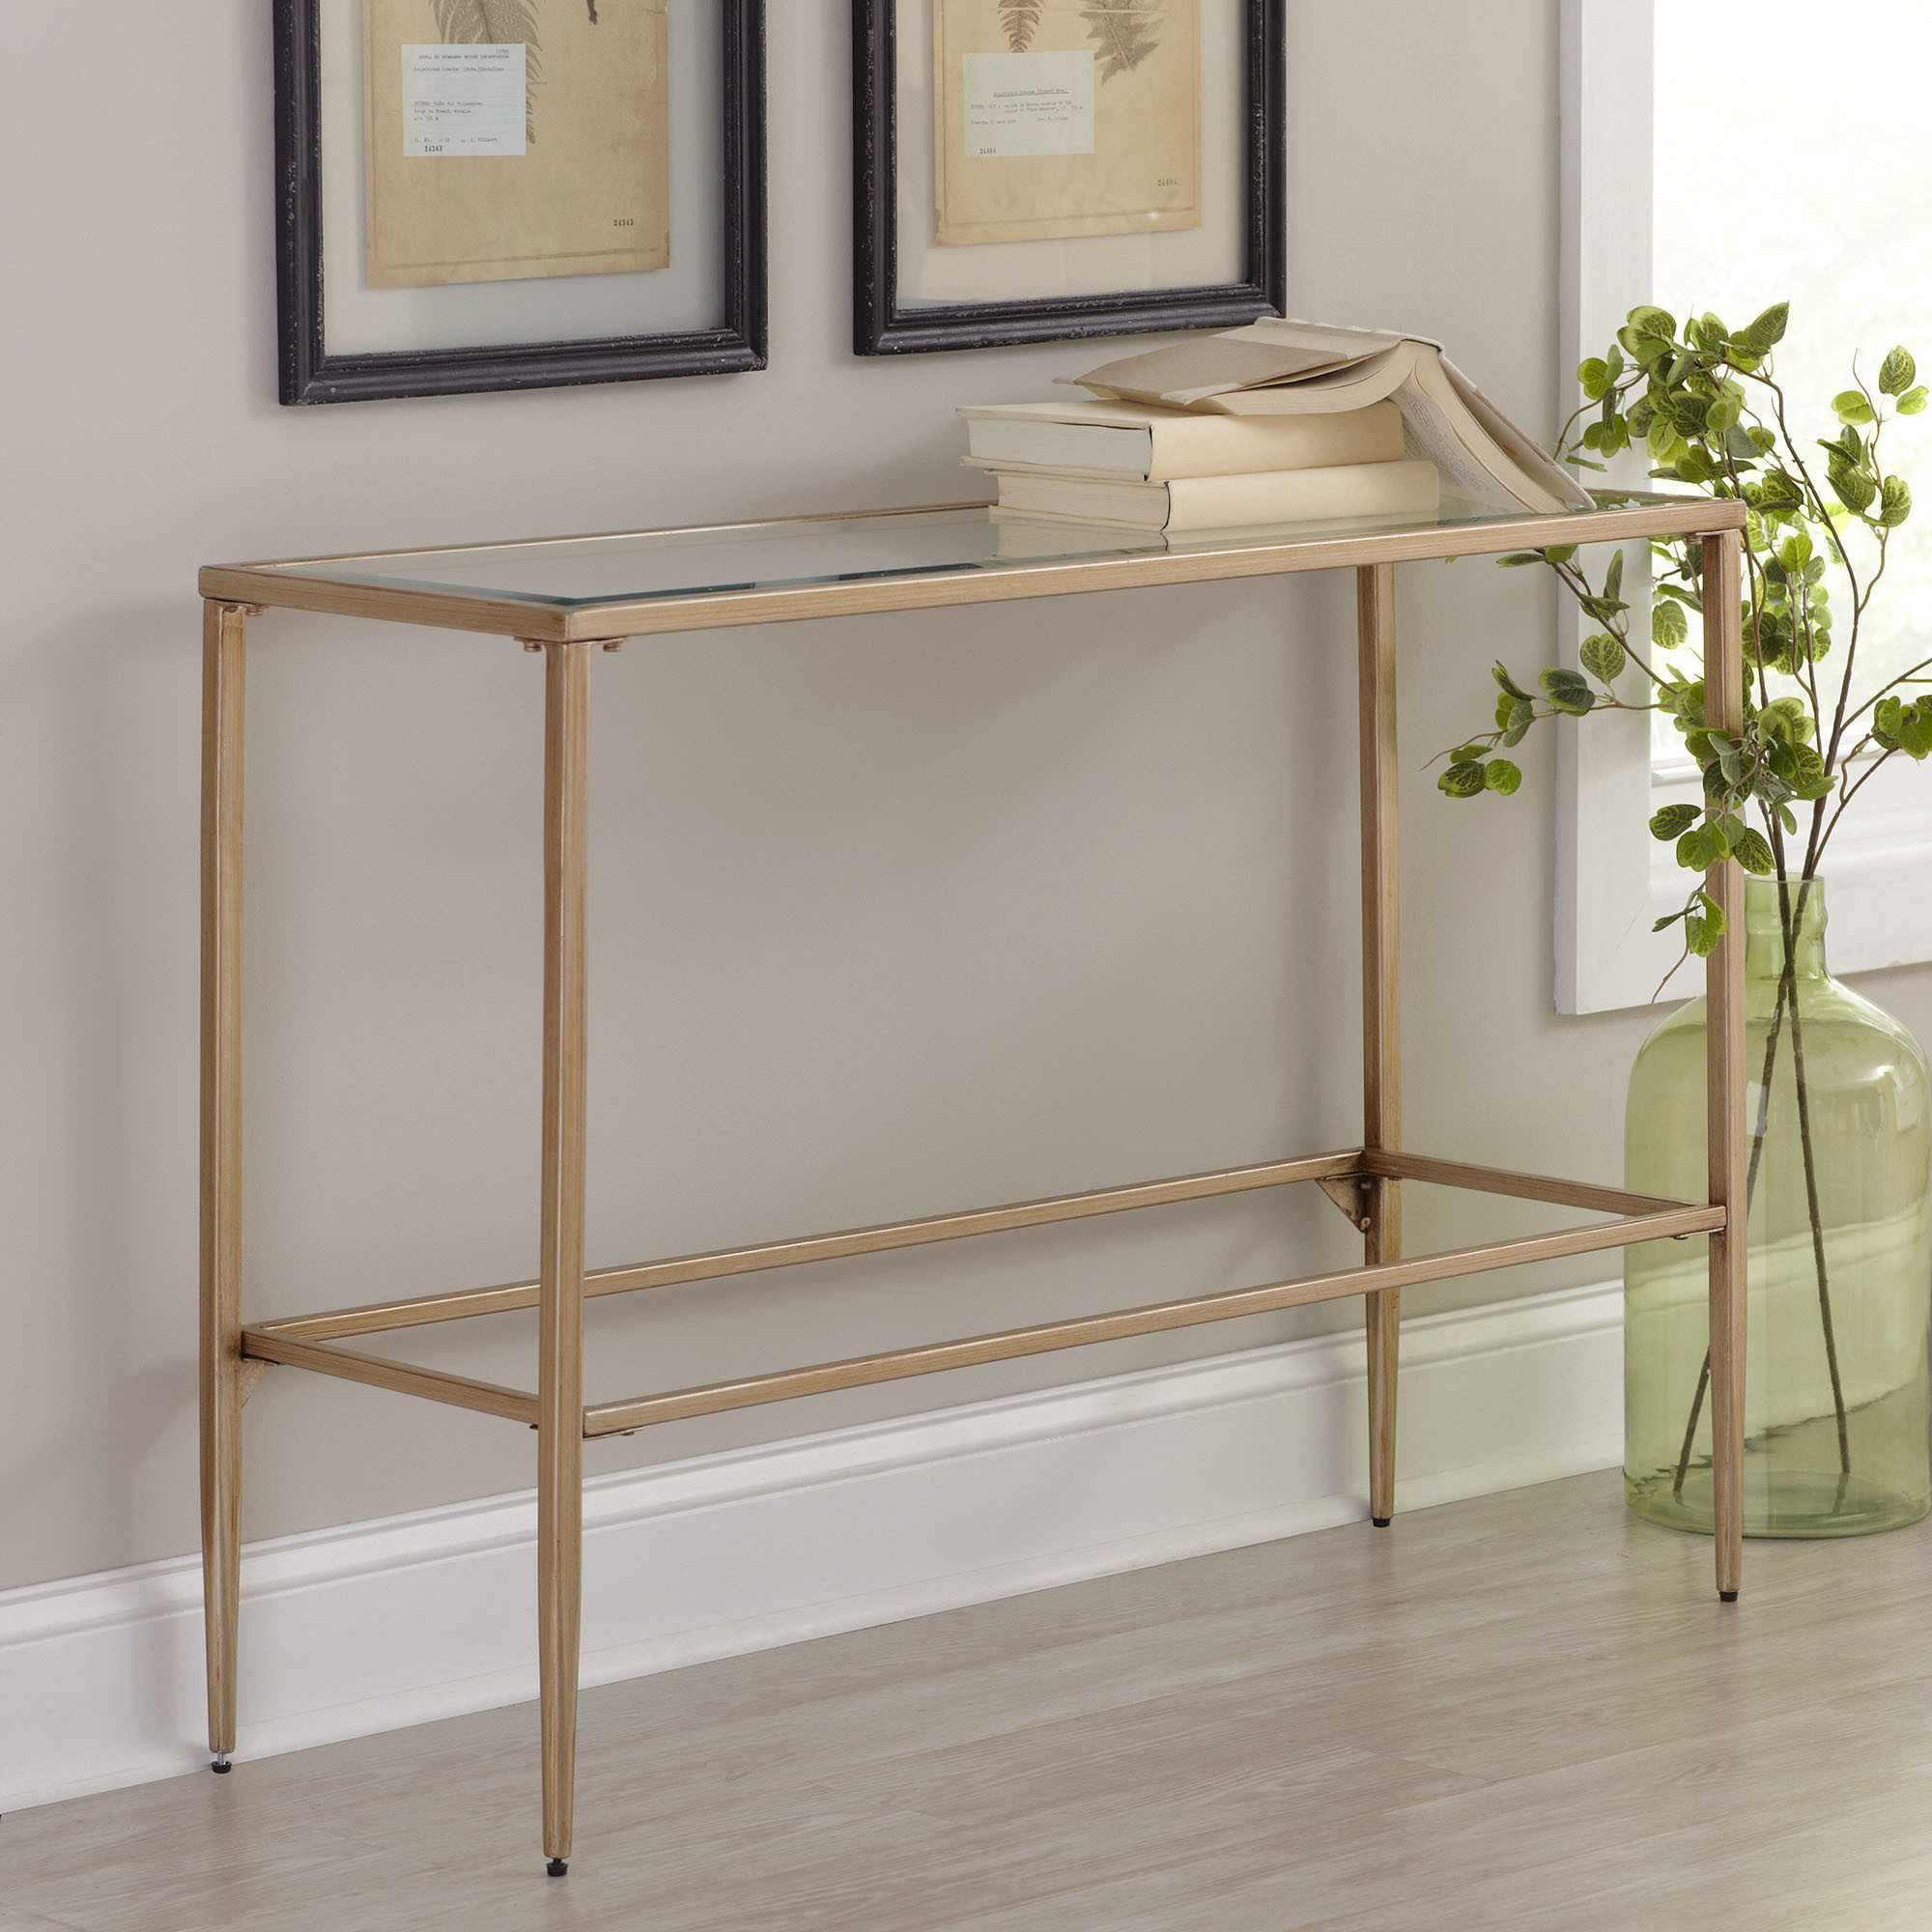 stunning inch high console table for tables extraordinary luxurious tall trends and coffee accent wicker glass gold legs entryway with shoe storage outdoor cement benches